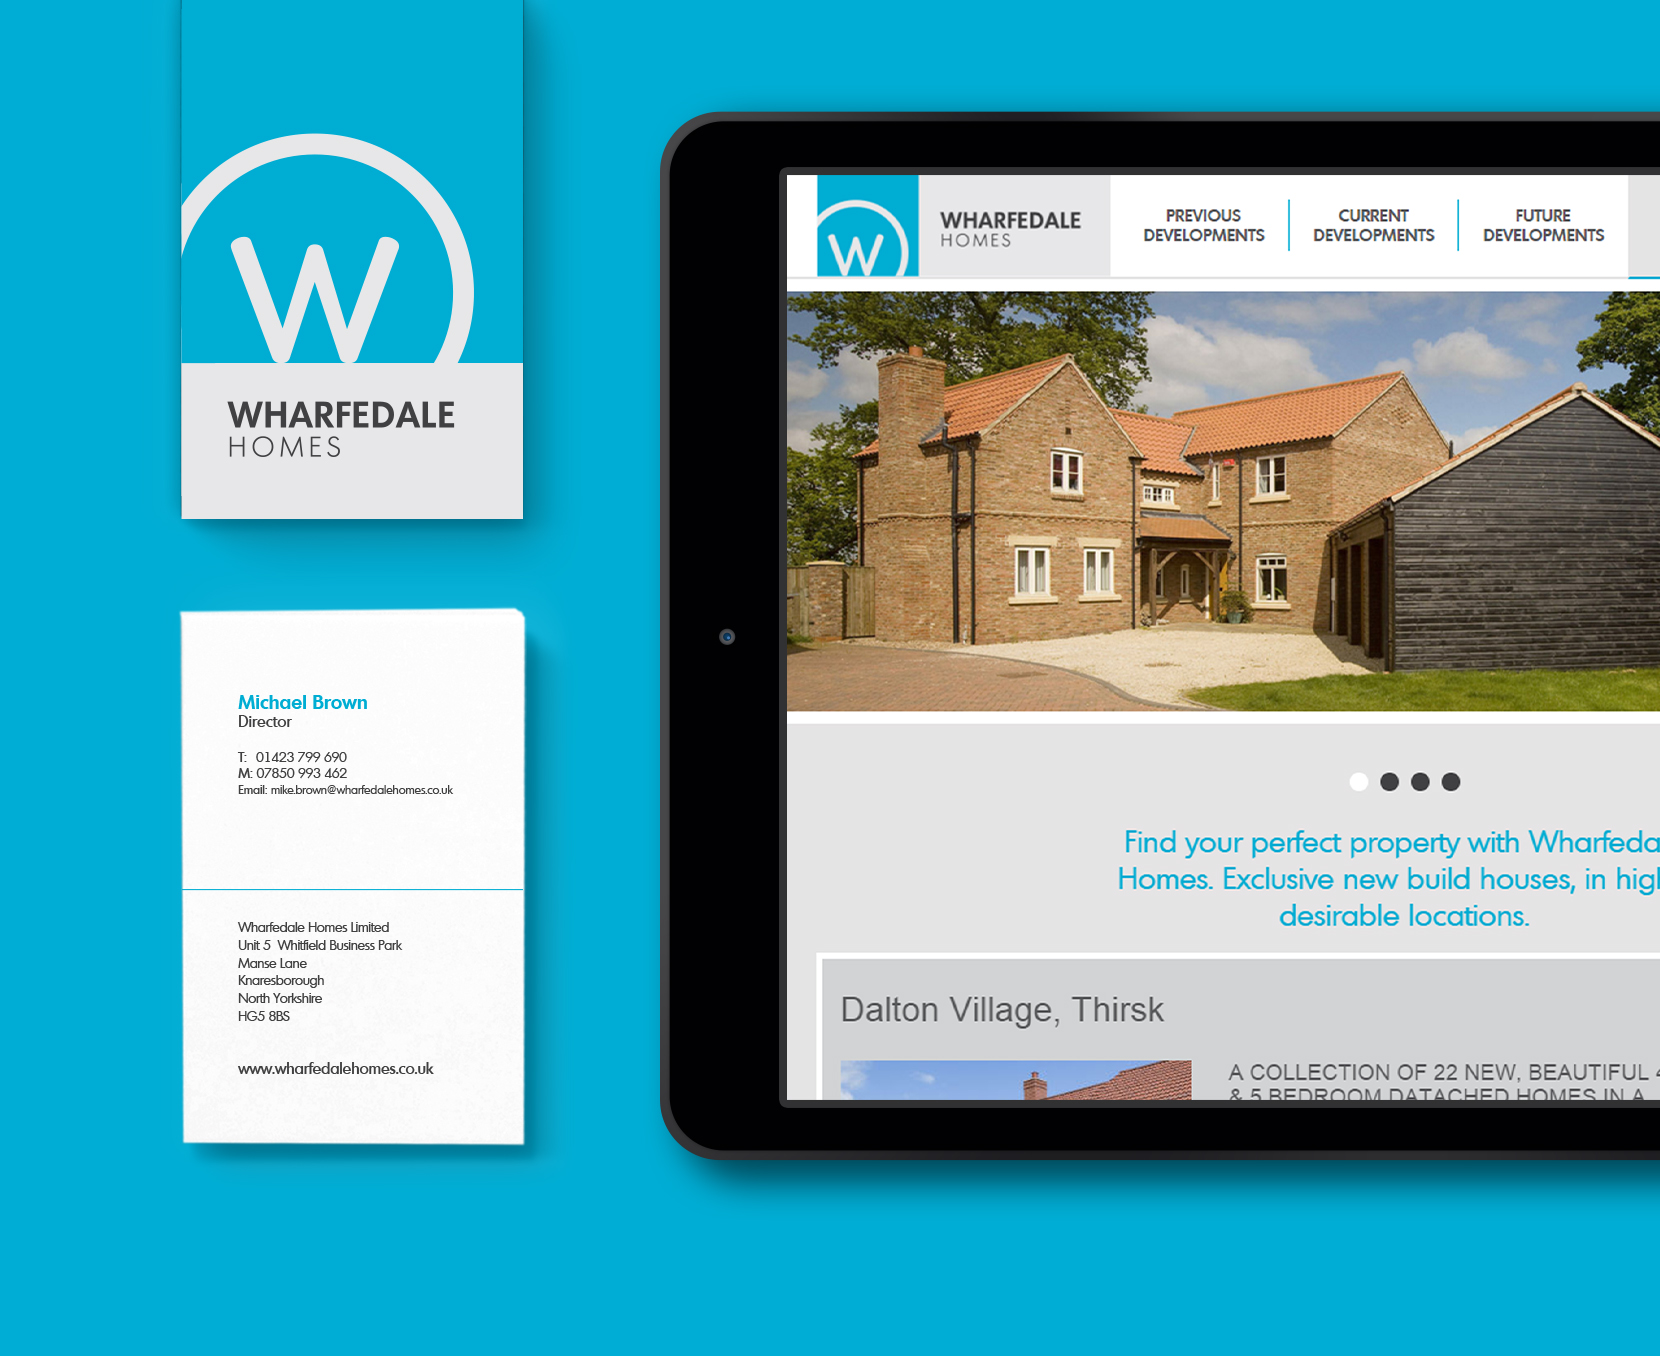 Wharfedale Homes - responsive designs and branding